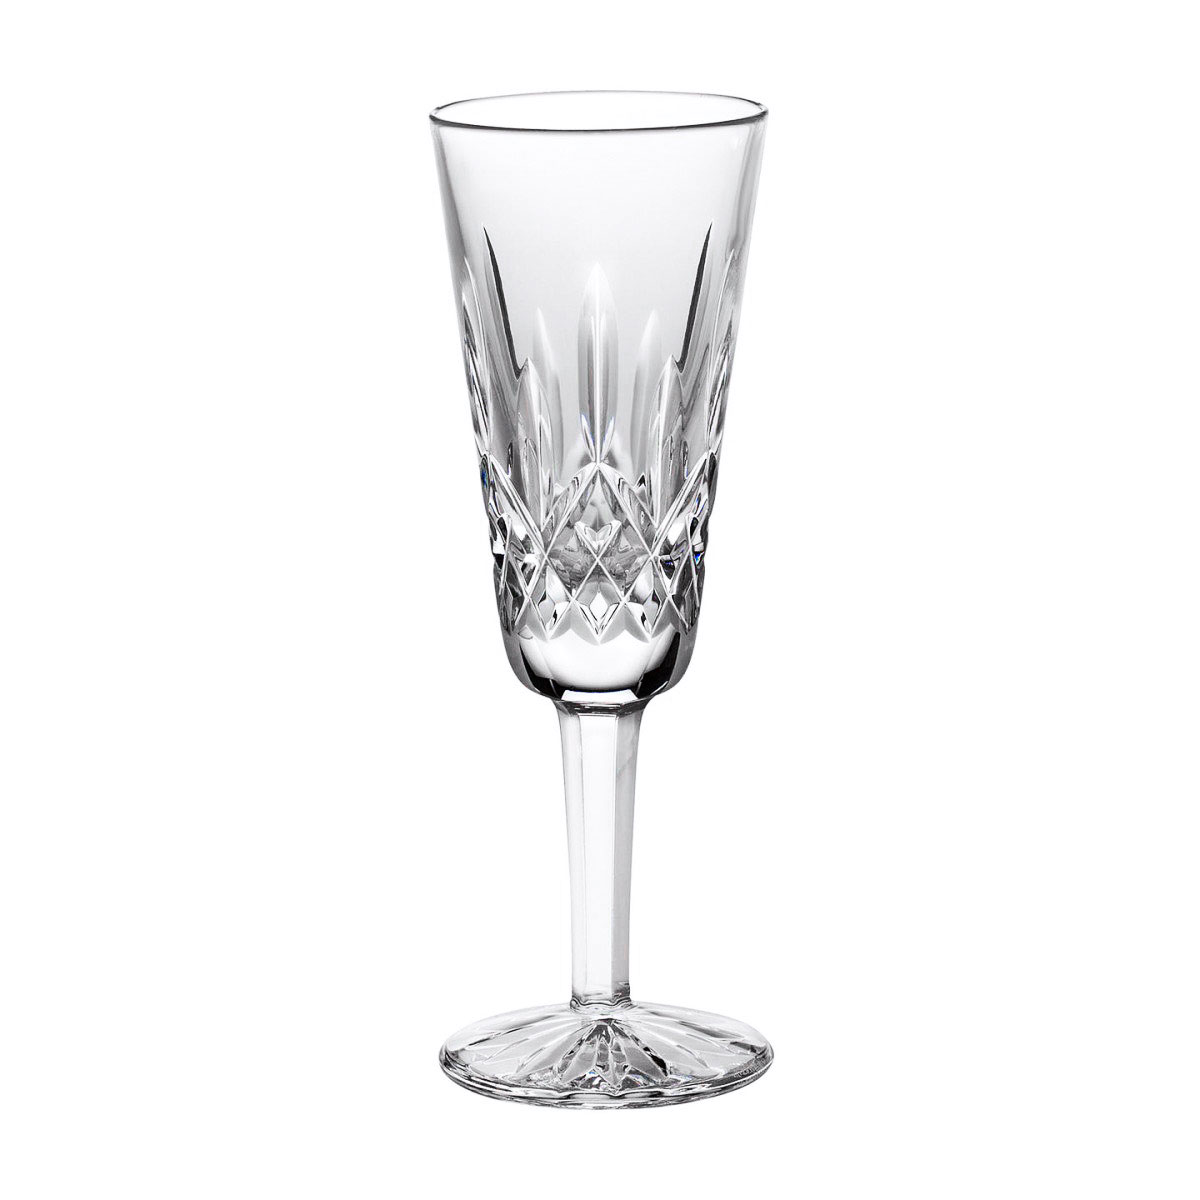 Waterford Crystal, Lismore Champagne Flute, Single